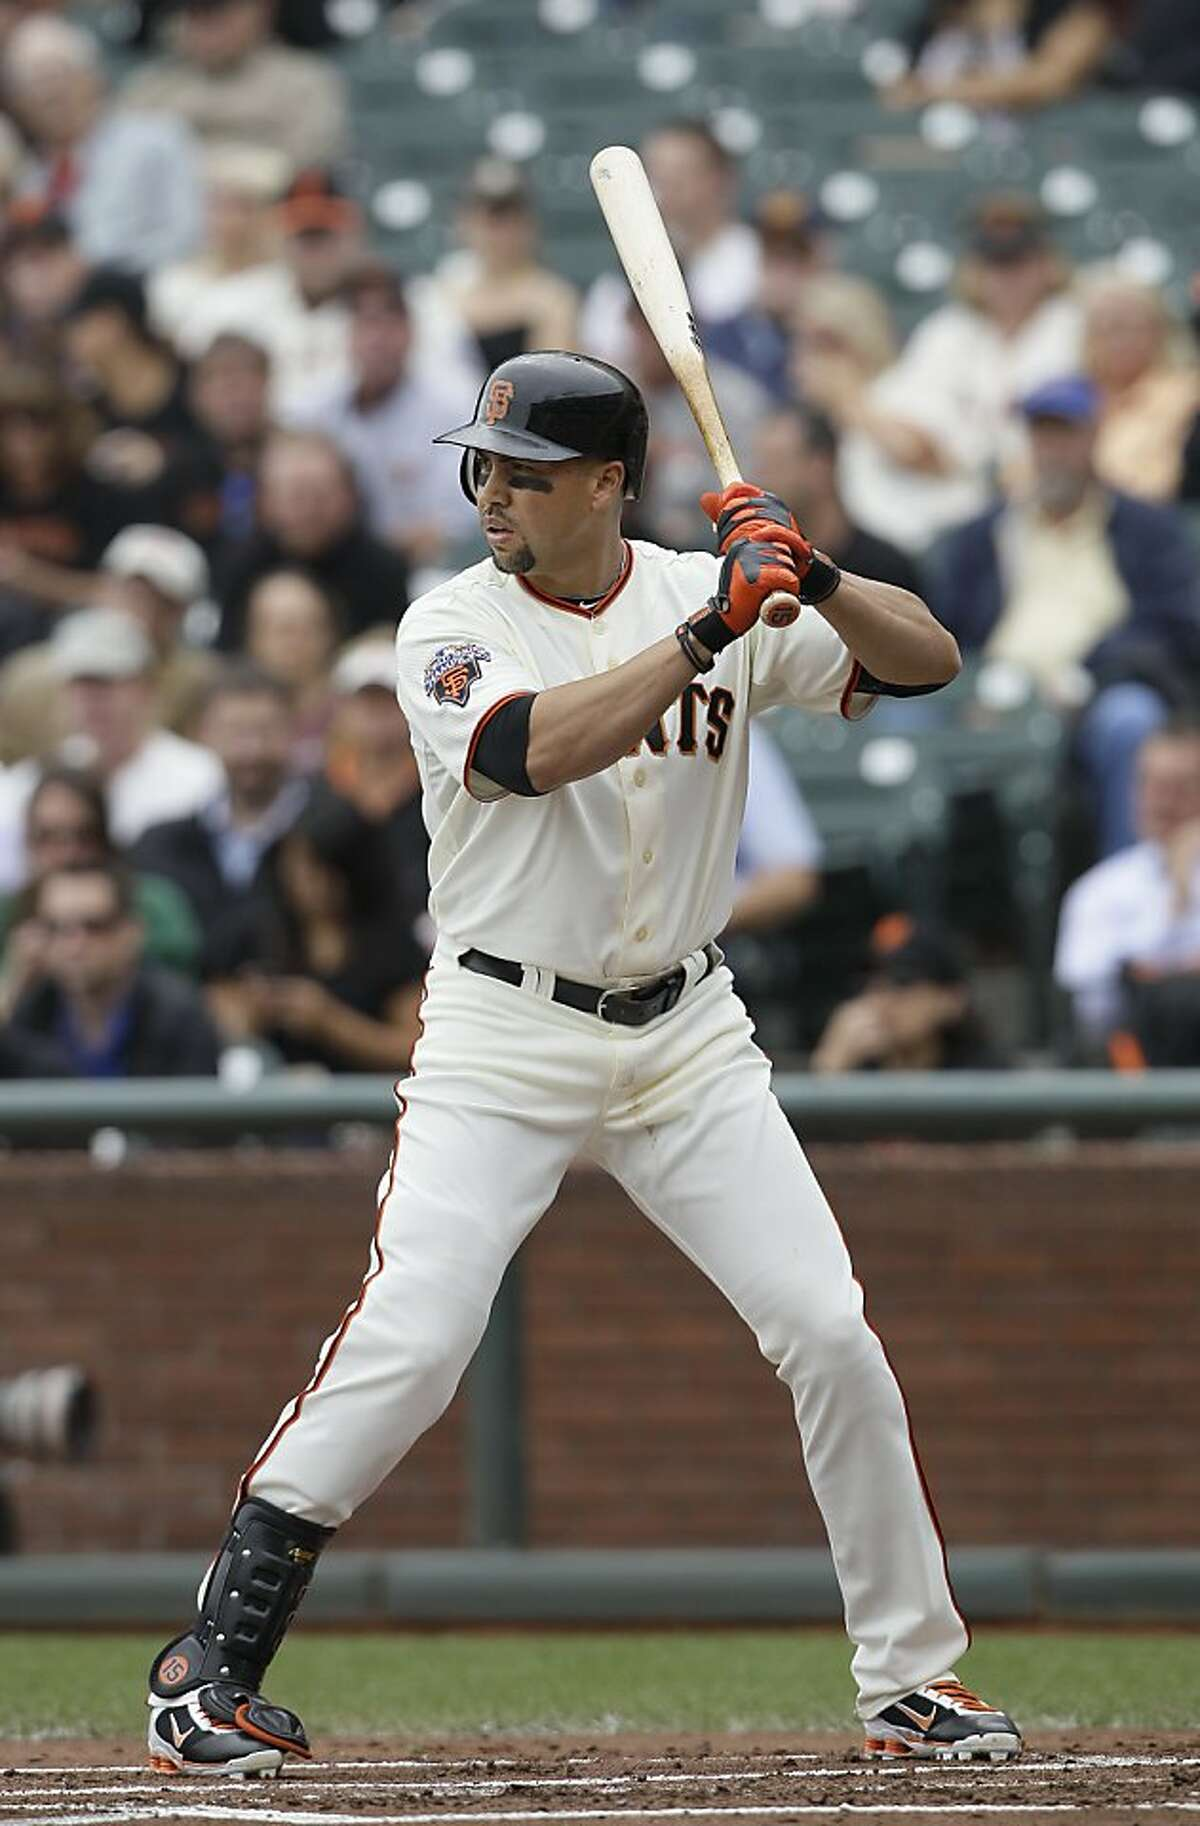 San Francisco Giants right fielder Carlos Beltran (15) in a baseball game against the San Diego Padres in San Francisco, Wednesday, Sept. 14, 2011. (AP Photo/Jeff Chiu)